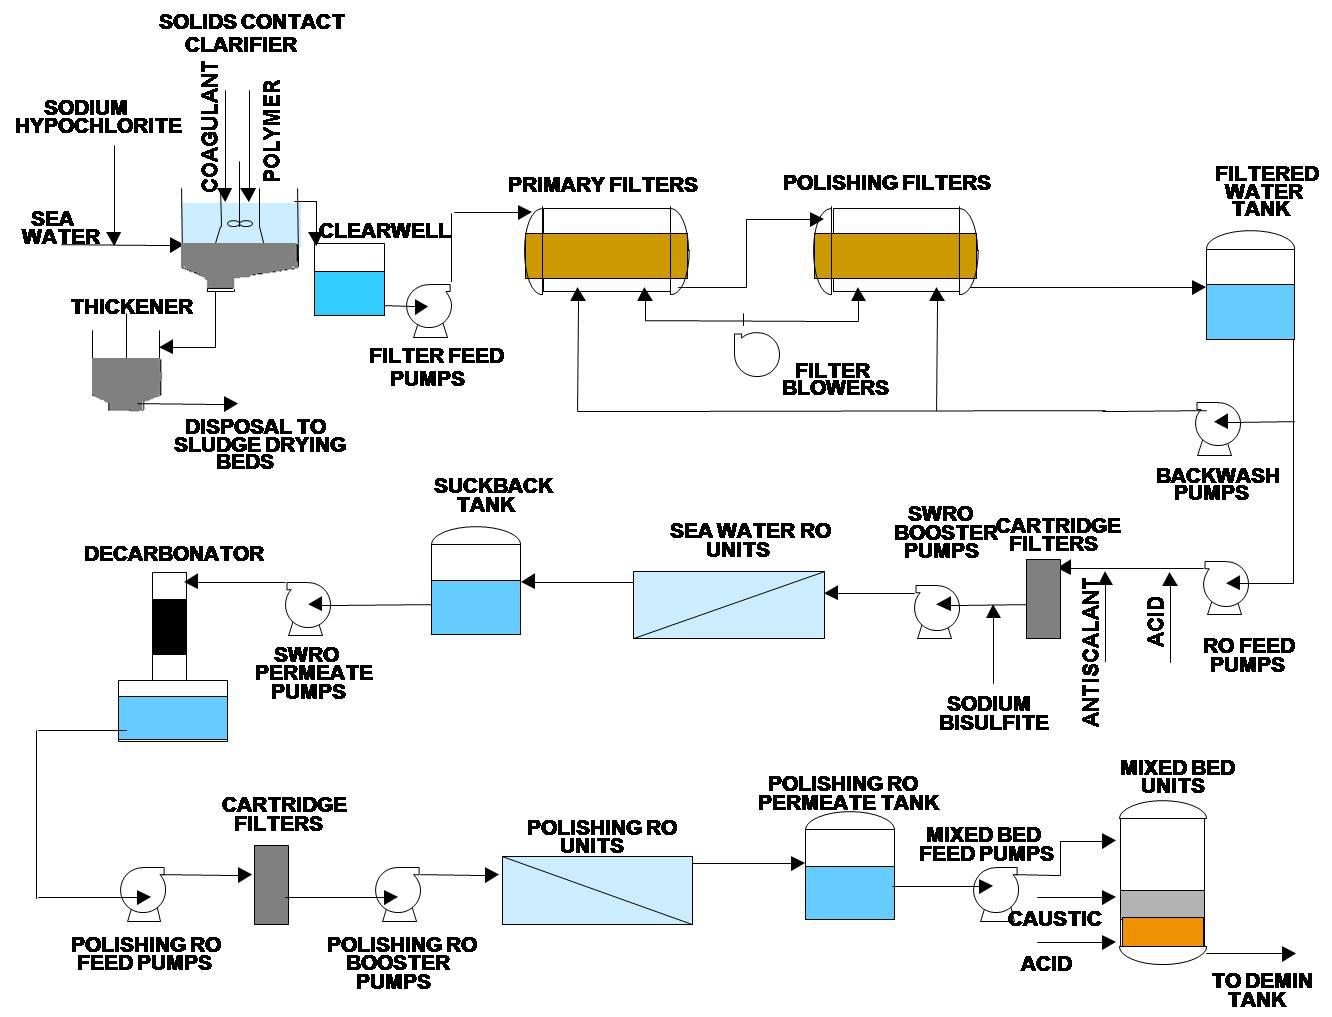 combined cycle power plant in southern india uses membrane, wiring diagram